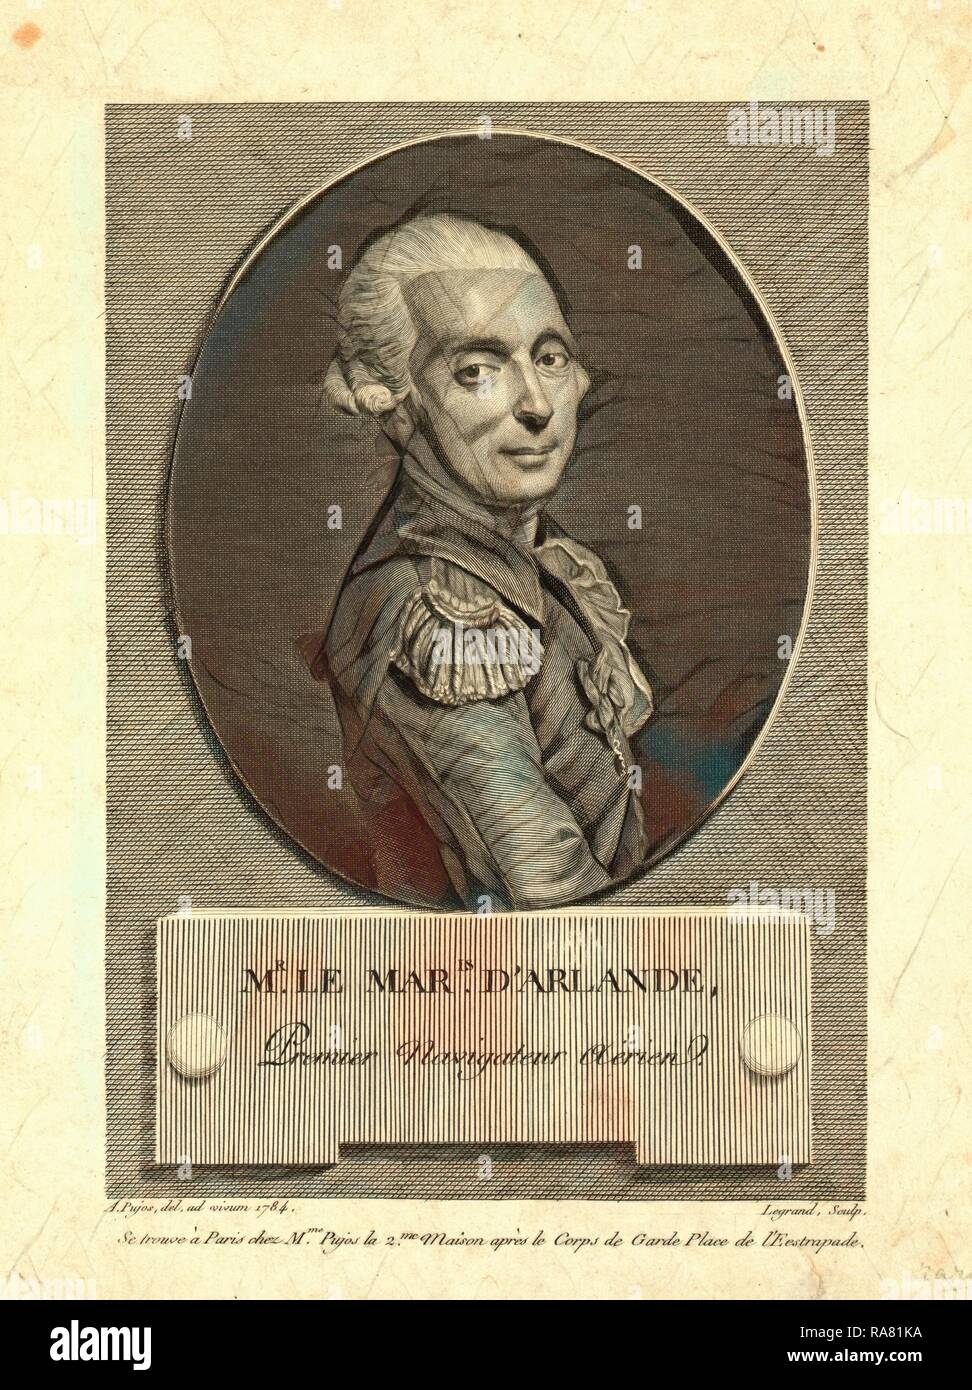 Mr. le maris. d'Arlande, first aerial navigator, Pujos, André, 1738-1788, artist, Half-length portrait of French reimagined Stock Photo